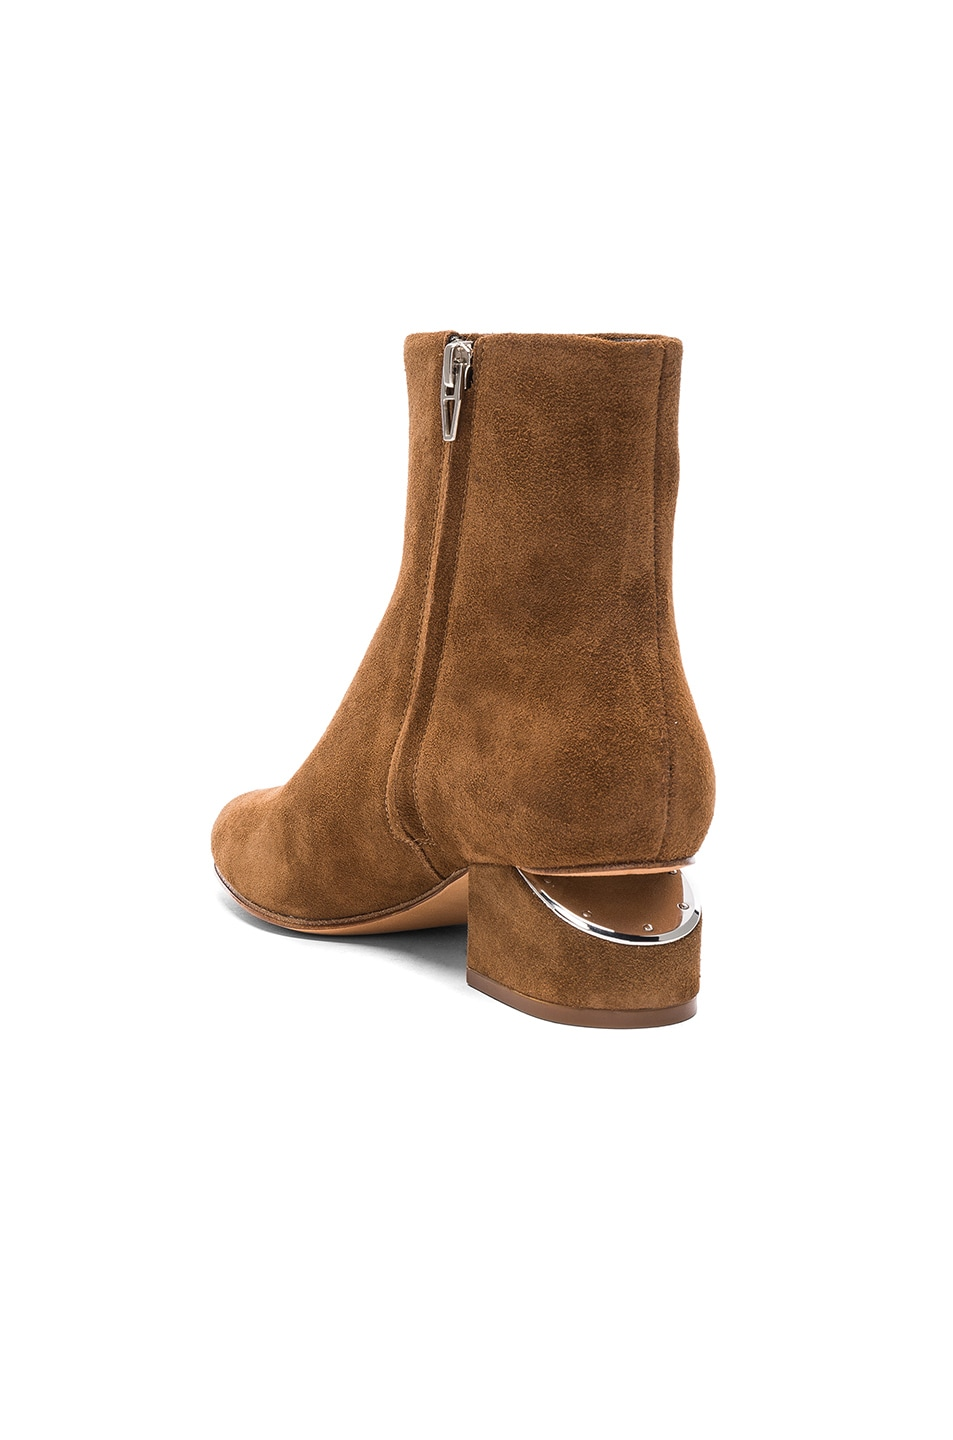 Image 3 of Alexander Wang Suede Kelly Boots in Dark Truffle